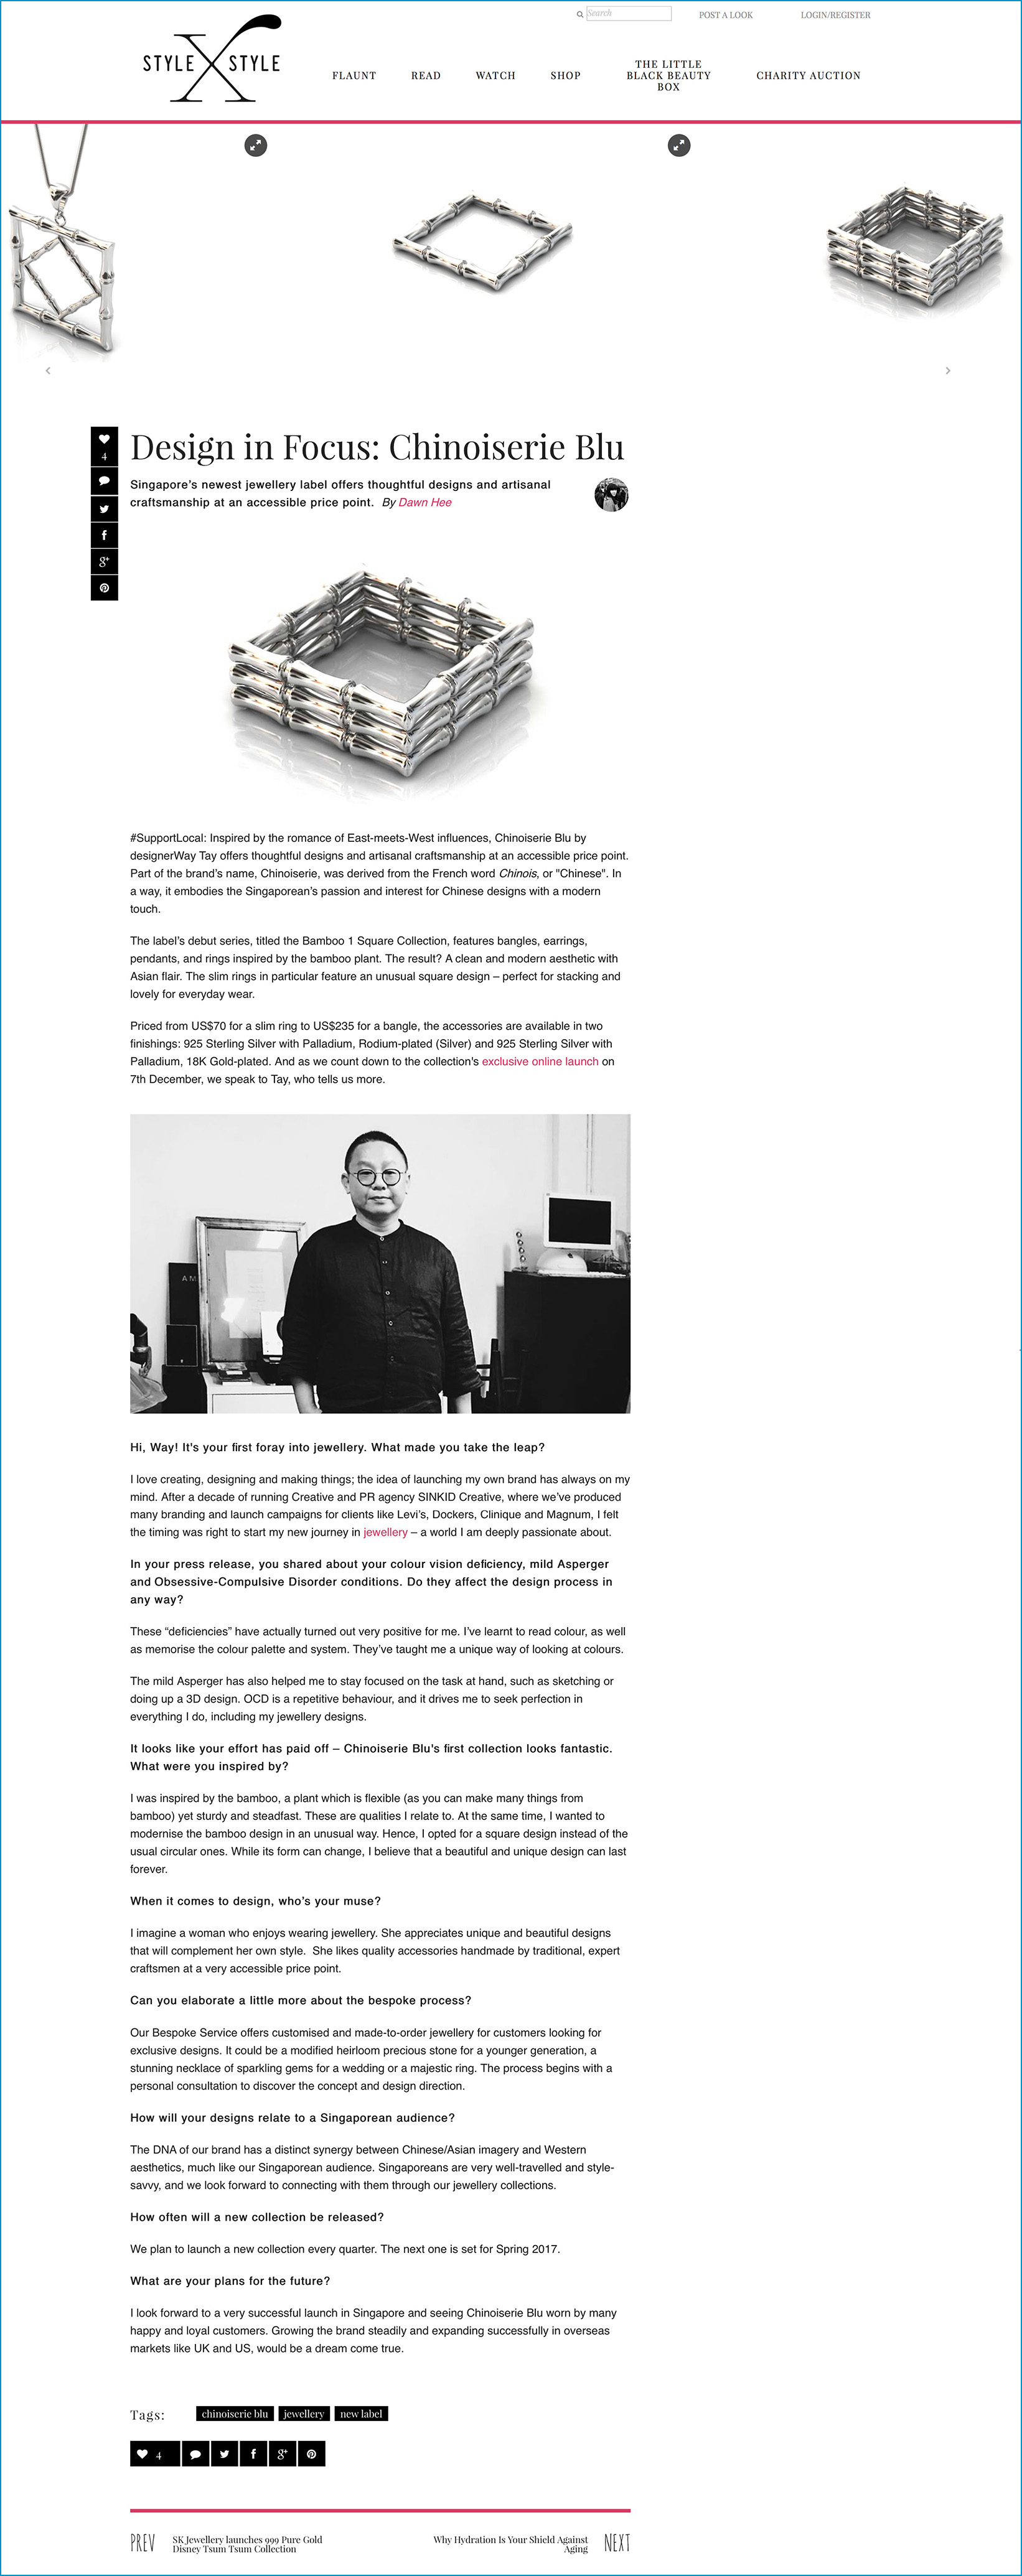 2016.11.23 Chinoiserie Blu styleXstyle.com Online Media Coverage